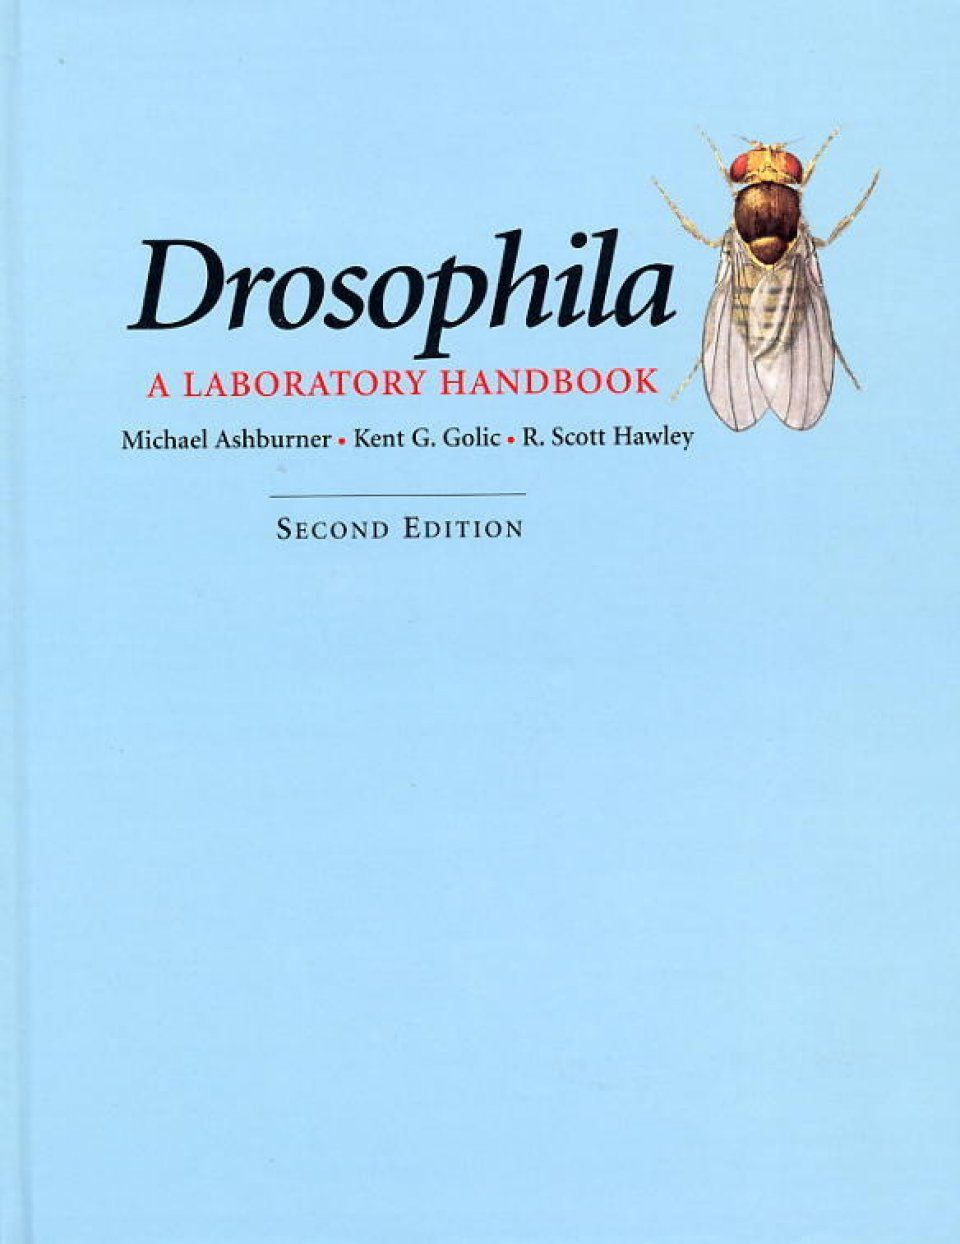 Drosophila, Volume 1: A Laboratory Handbook